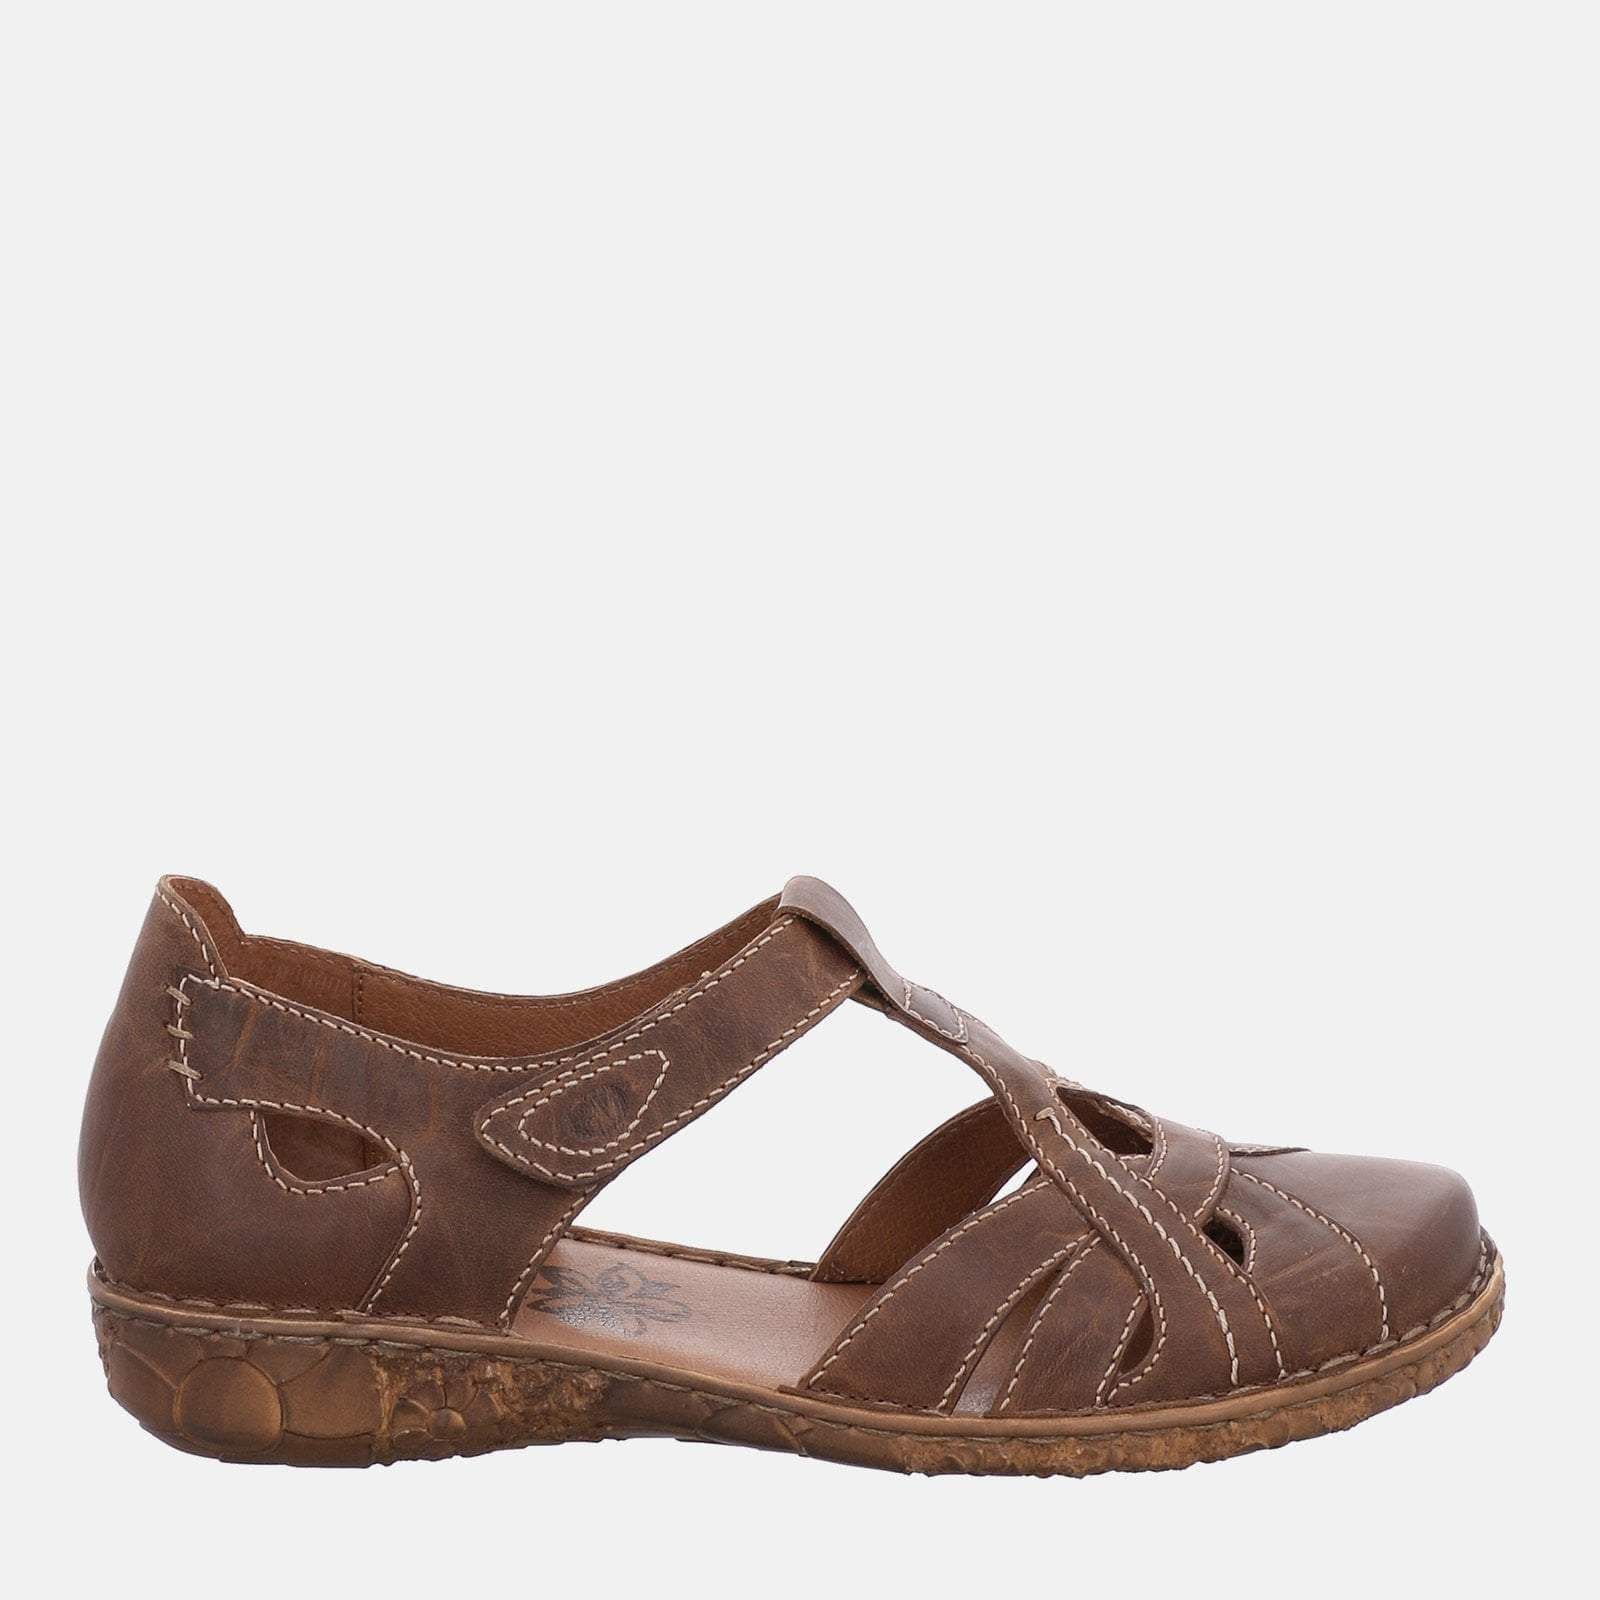 Josef Seibel Footwear Rosalie 29 Brandy - Josef Seibel  Brown Tan Leather Ladies Sandal